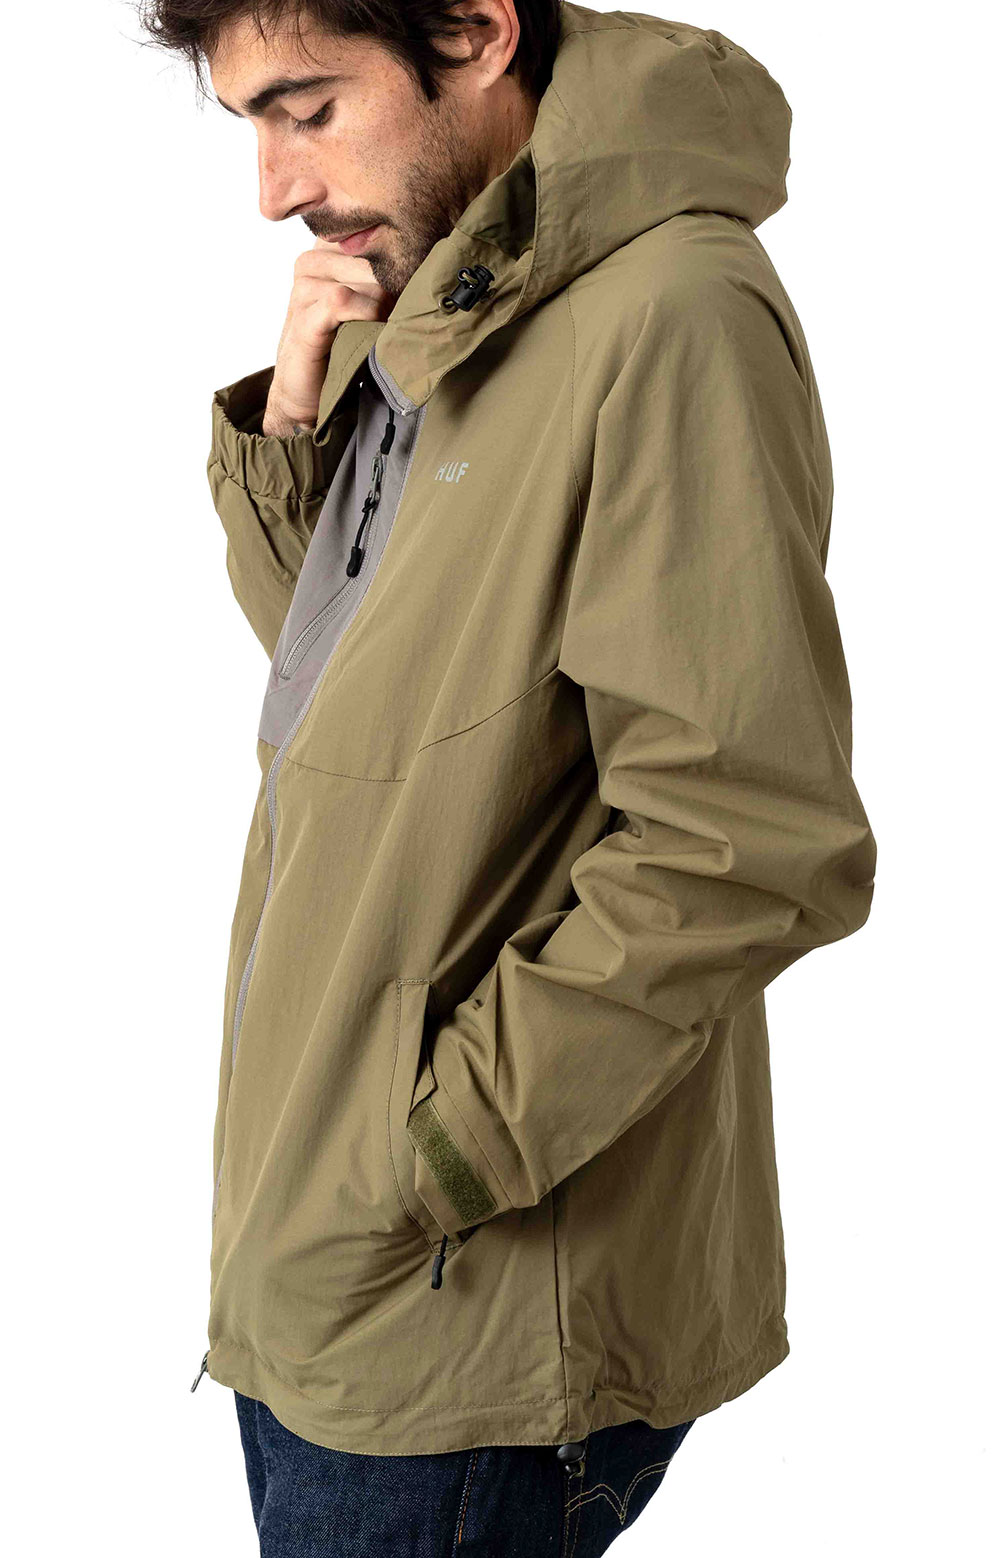 Standard Shell 2 Jacket - Martini Olive 2